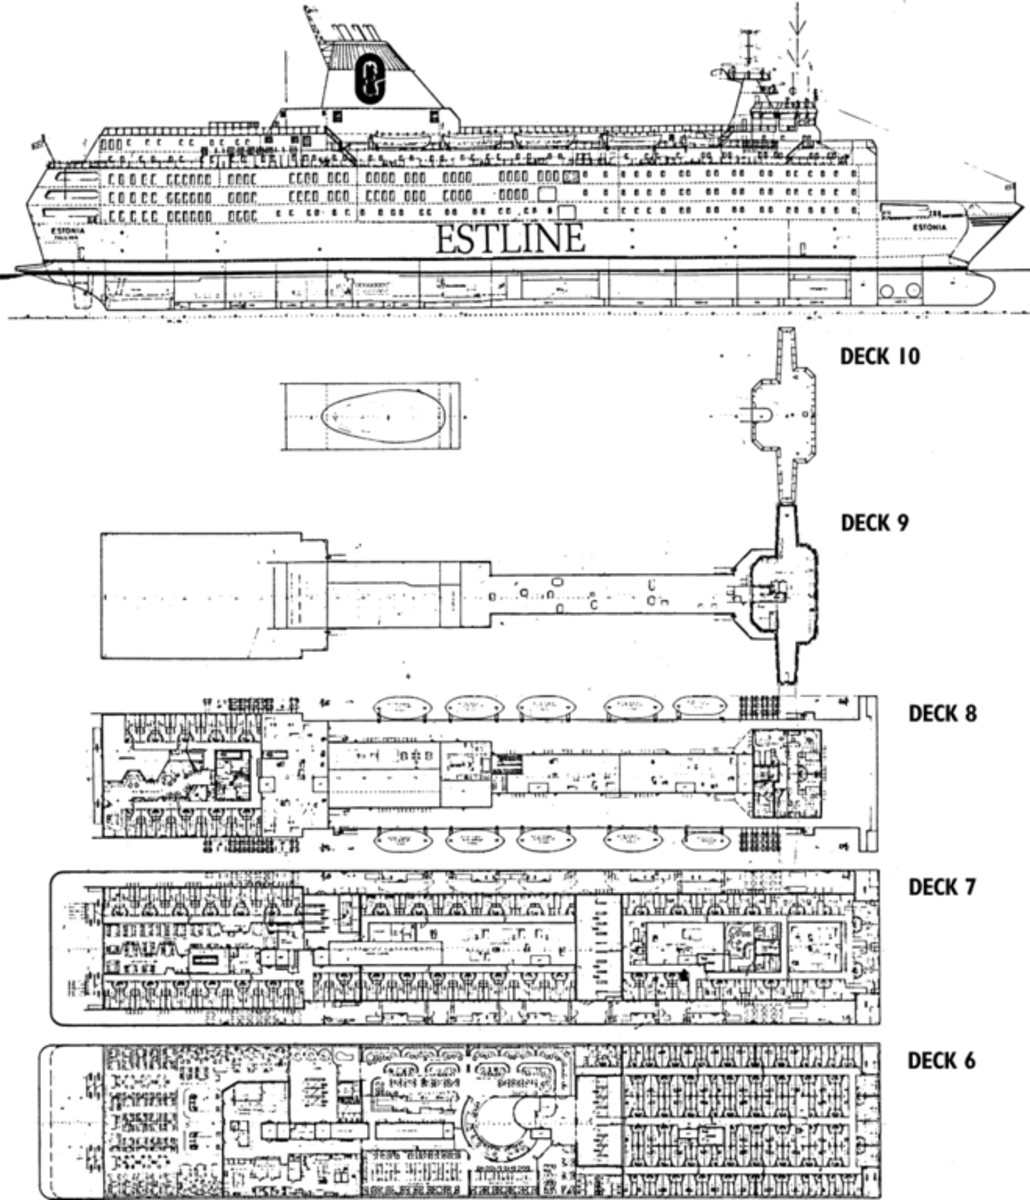 Diagram of the MS Estonia